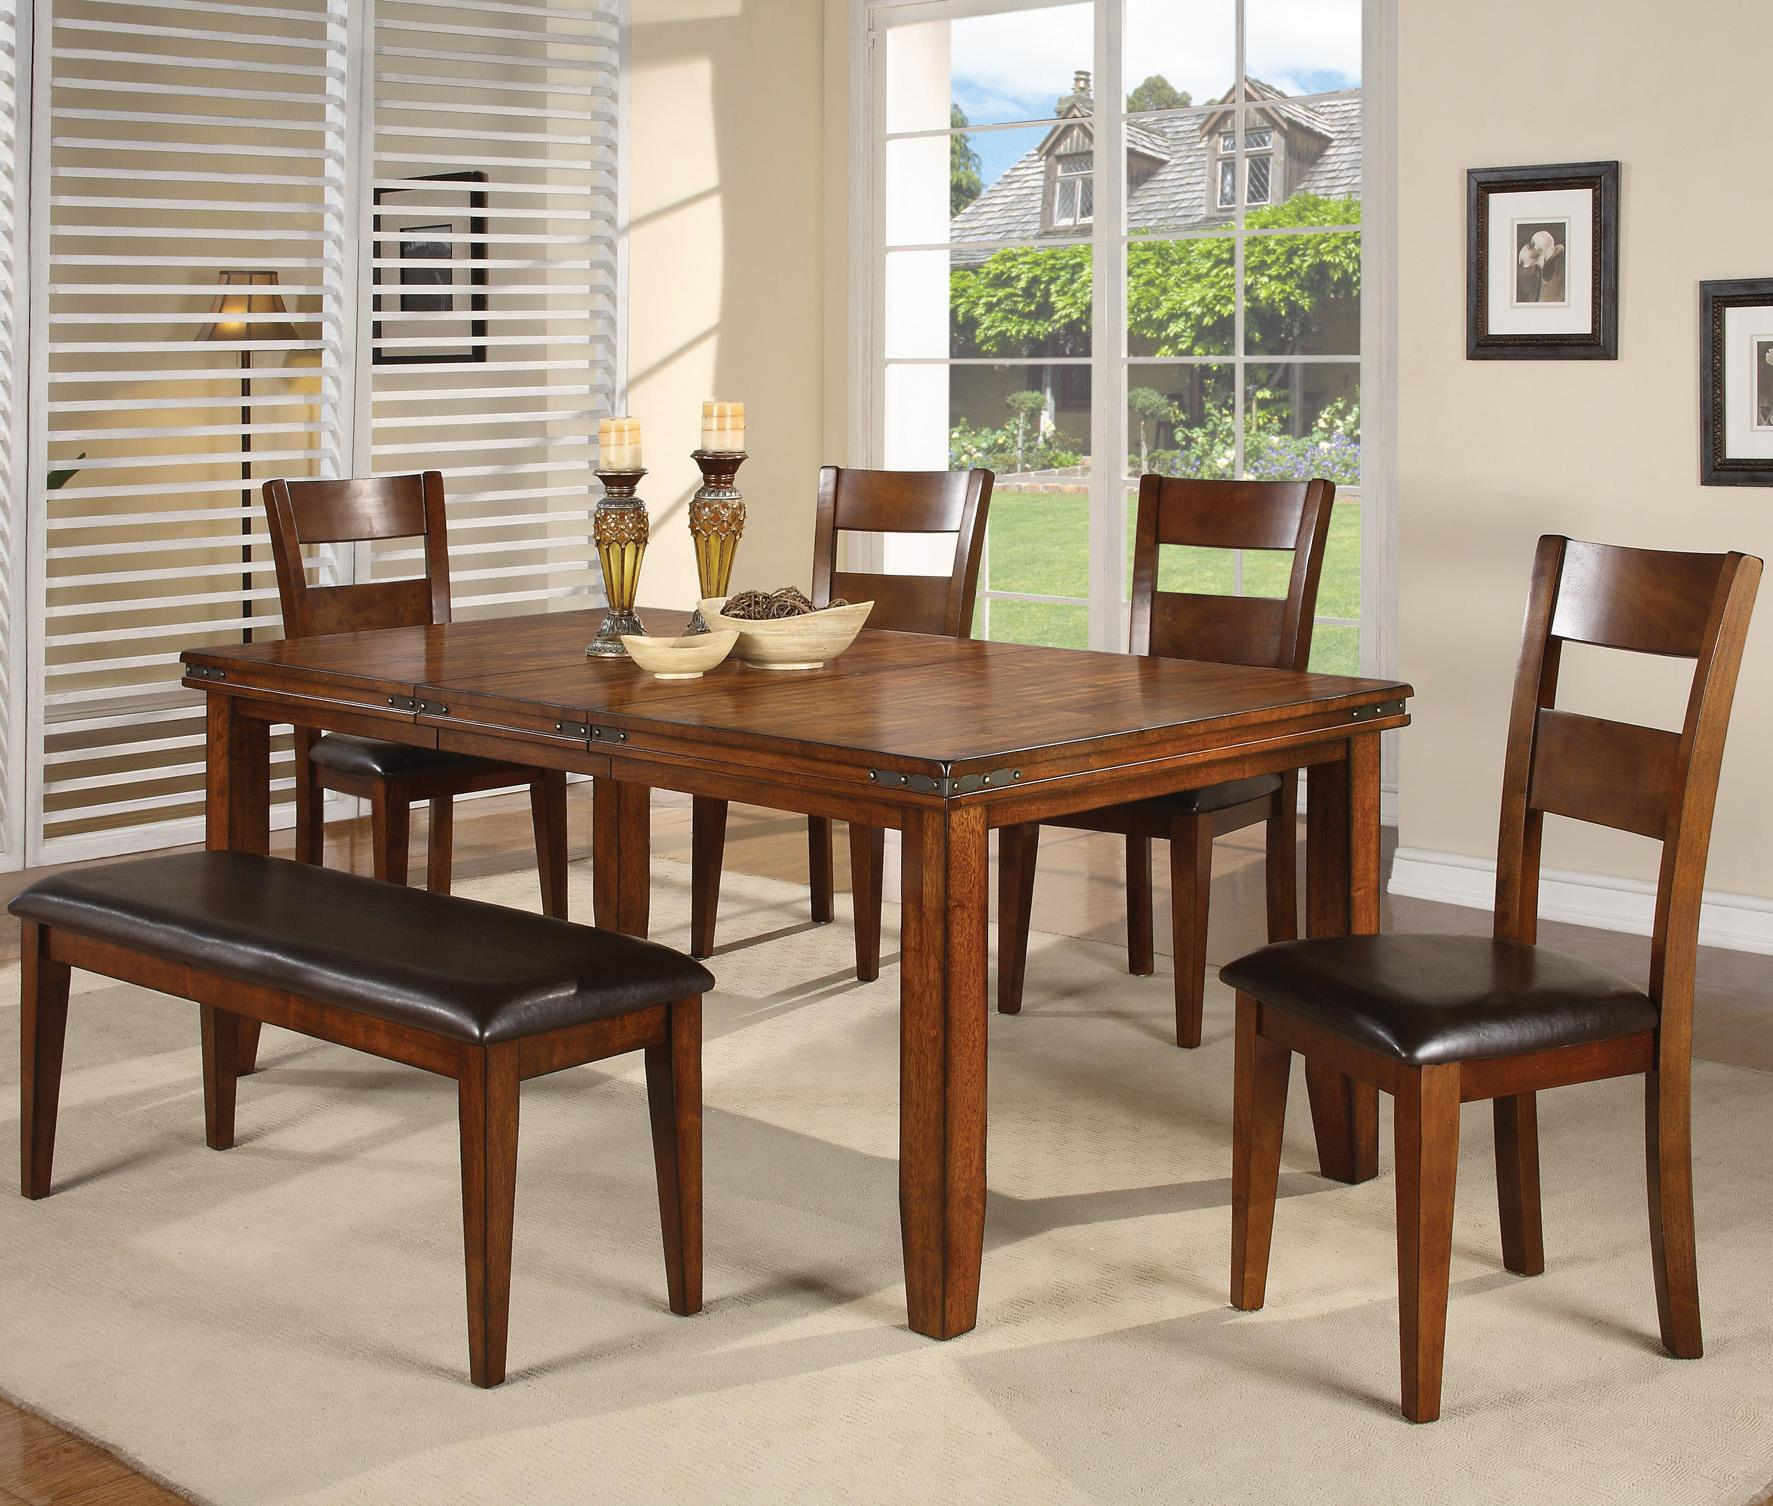 Sturdy Dining Room Chairs Figaro 6 Piece Dining Table And Side Chairs Set With Bench By Crown Mark At Royal Furniture